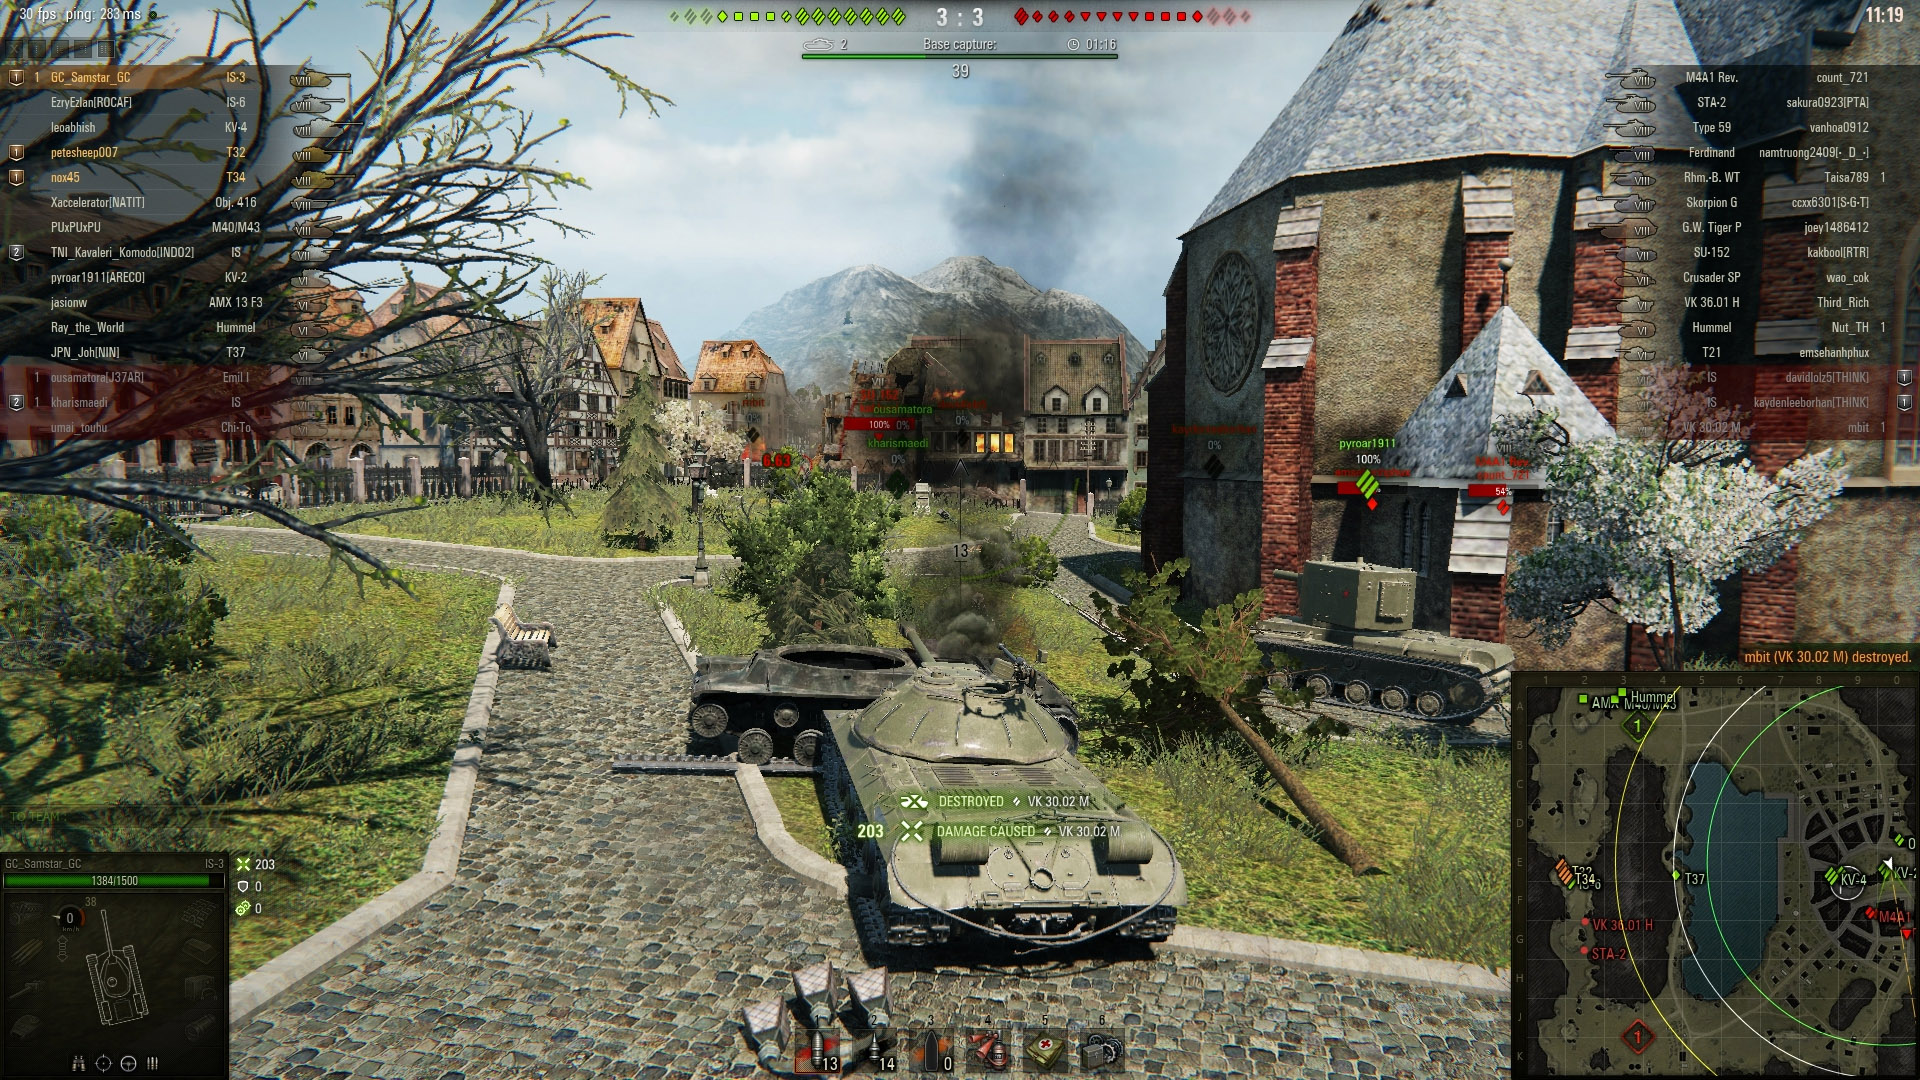 Using the wreckage of a tank is a good way to go hull down. You'll be able to shoot over the top while protecting your fragile hull.